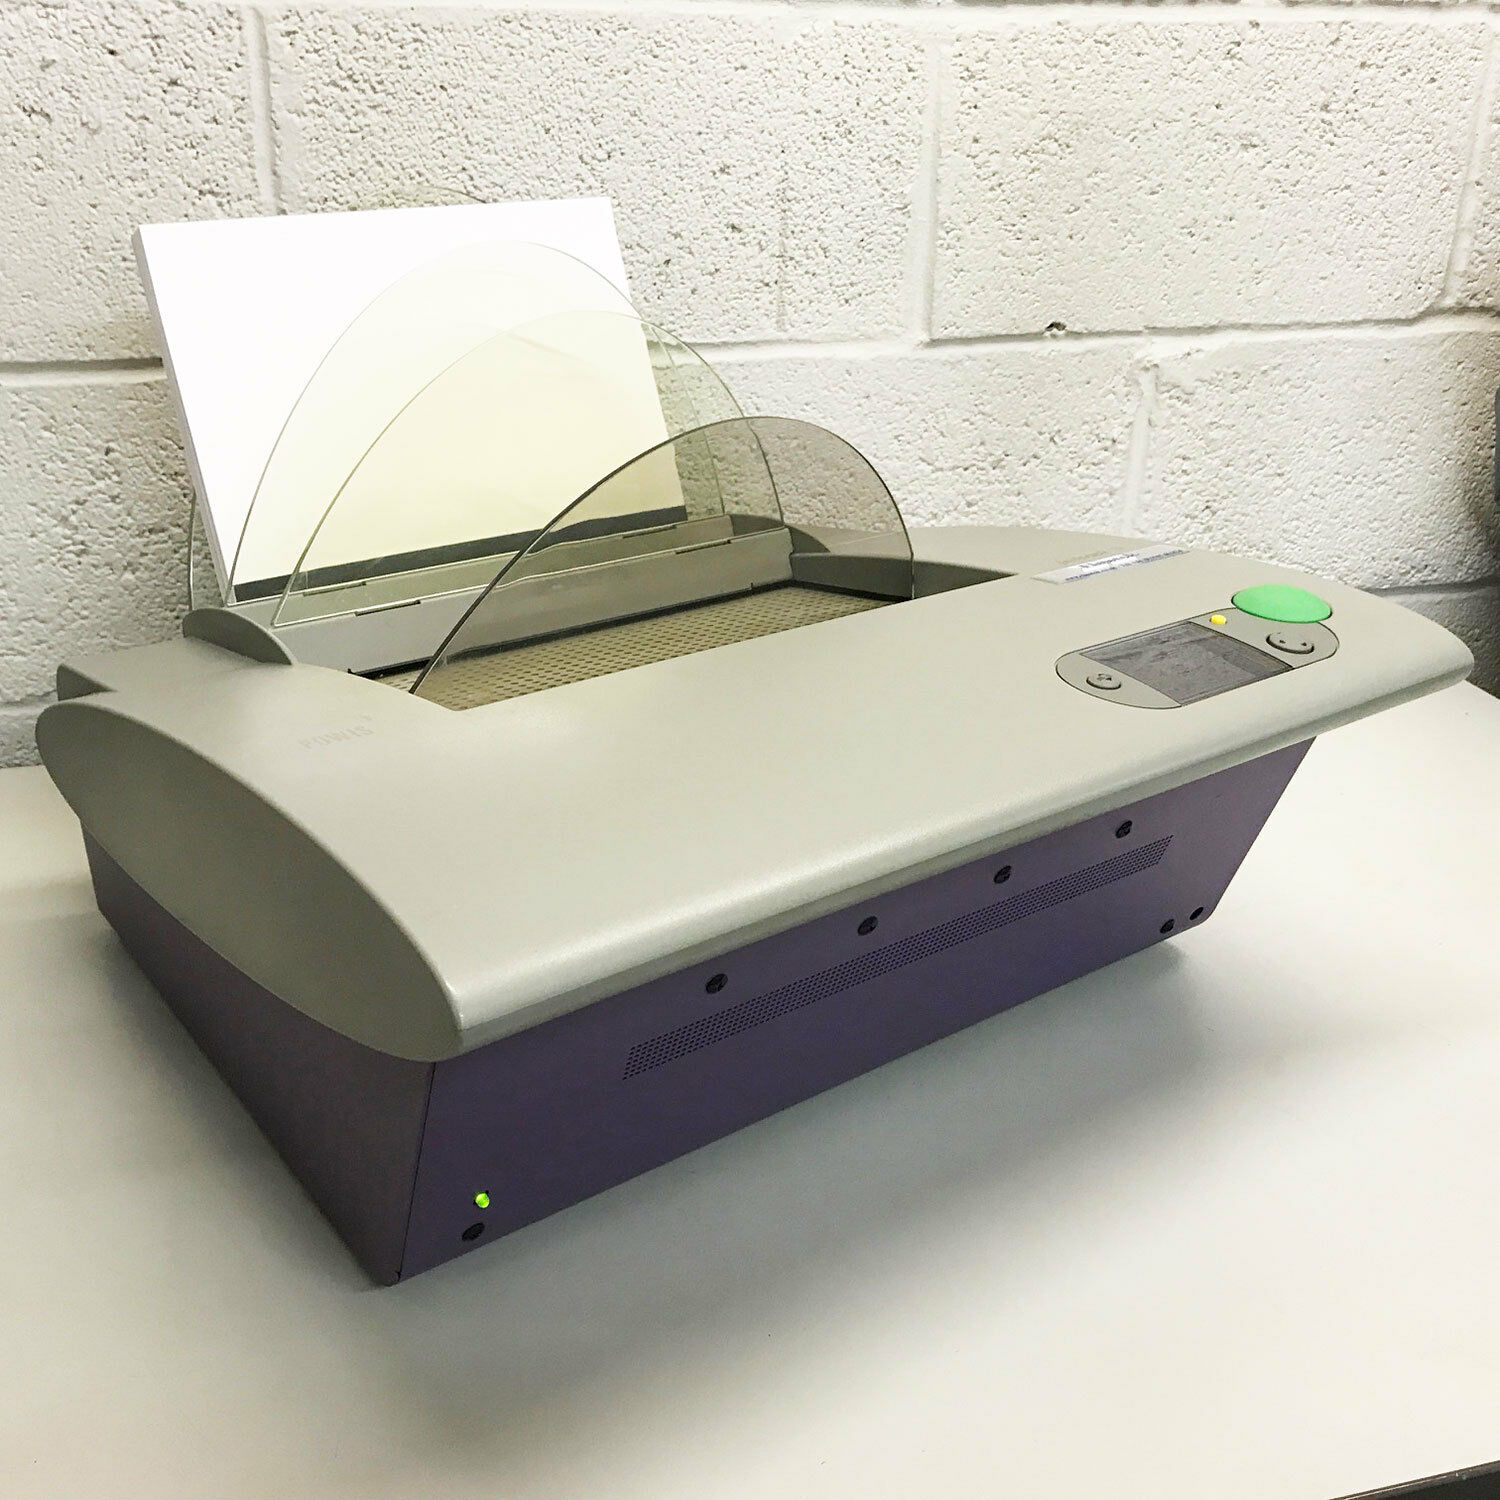 Powis Fastback 20 Heavy-Duty Document Strip Binding Machine for sell, R18000 Vat Inclusive.